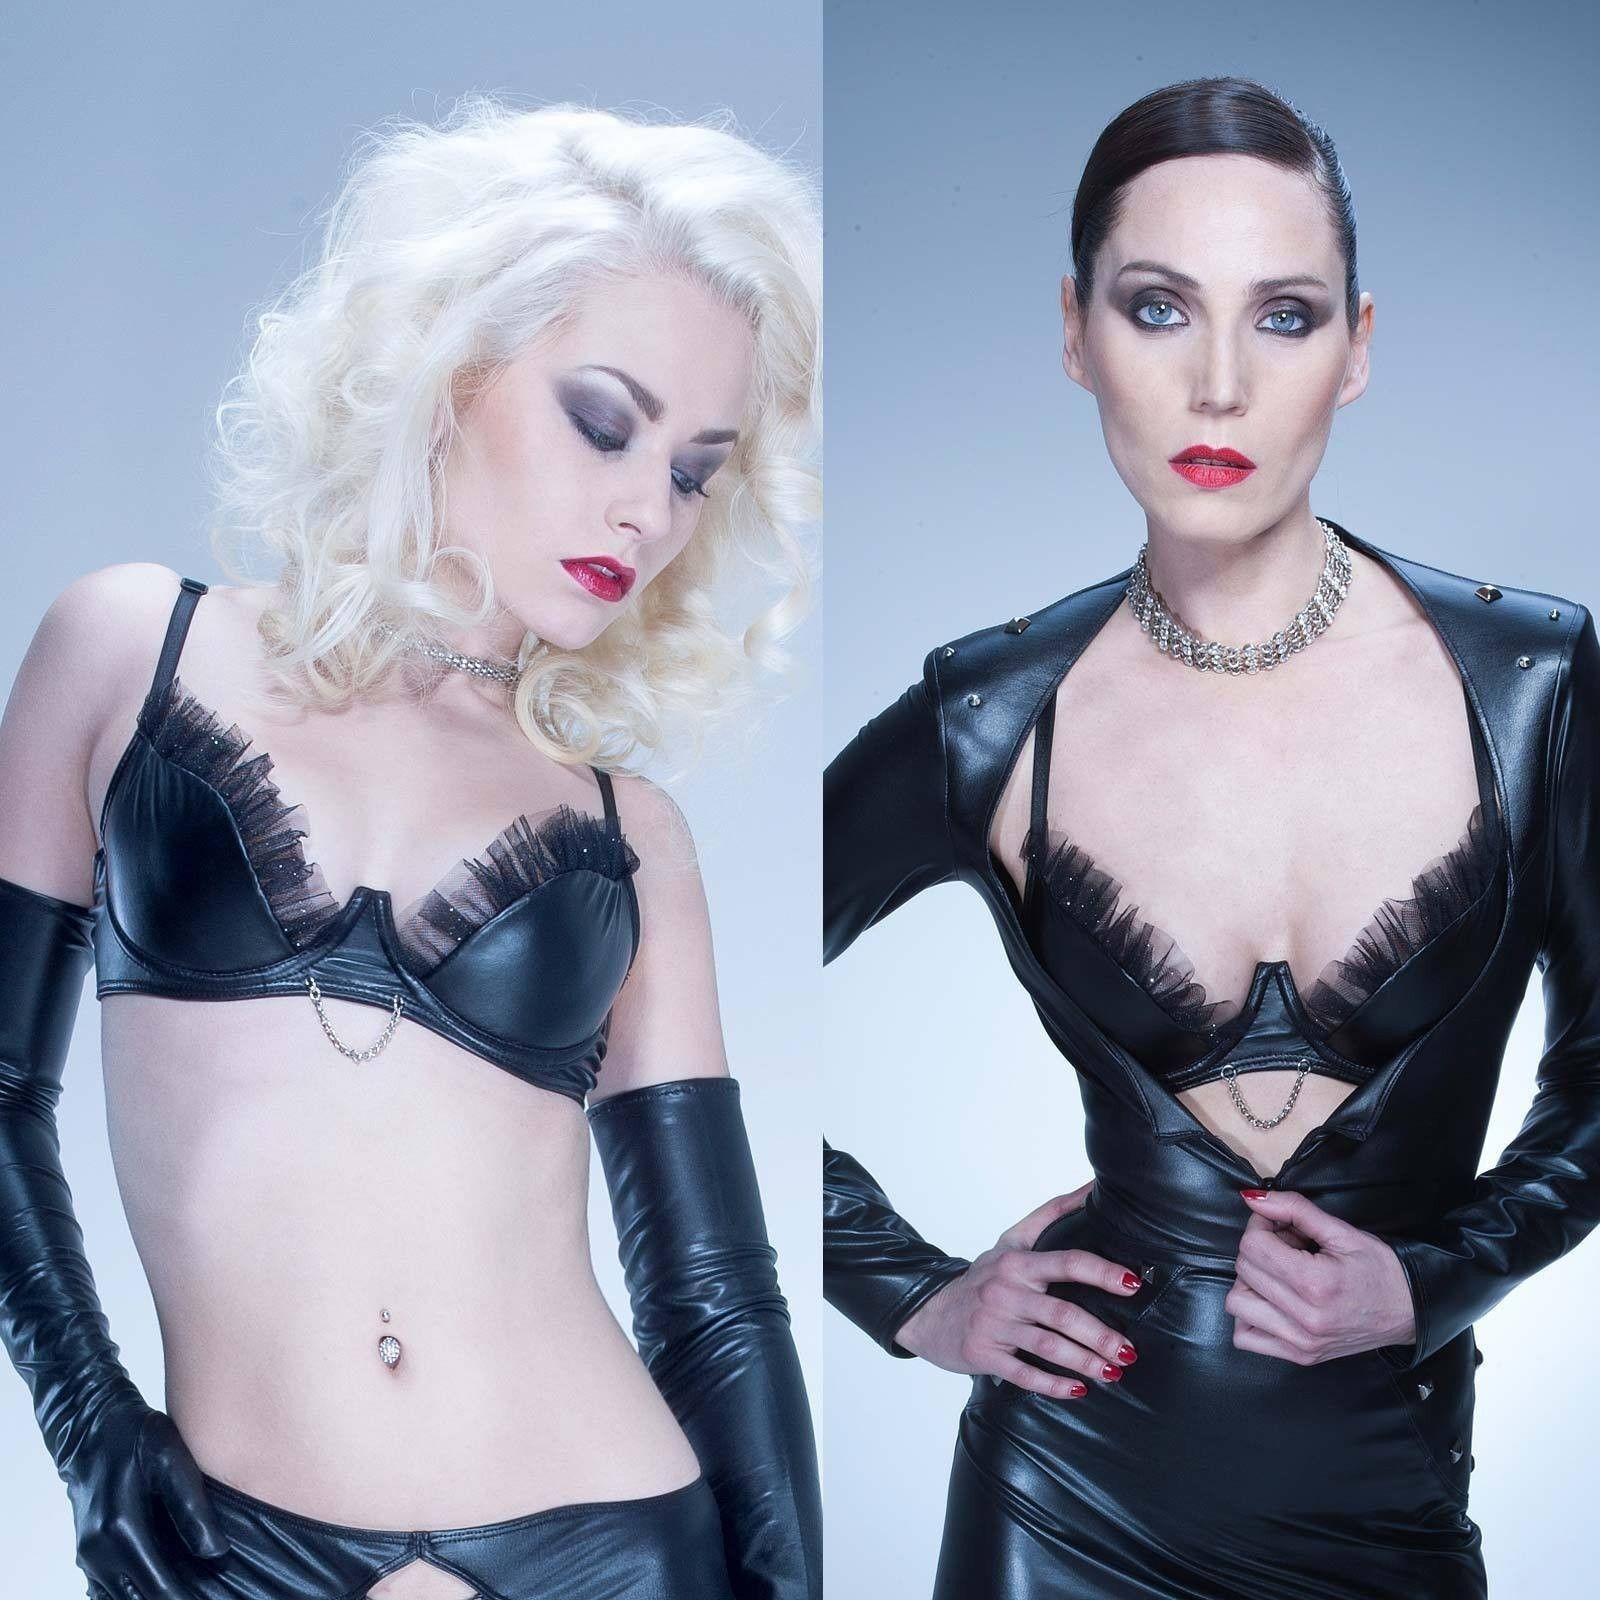 PATRICE CATANZARO Betty Lou Wetlook BH Party Bra GOTHIC CLUBWEAR GOGO Kunstleder